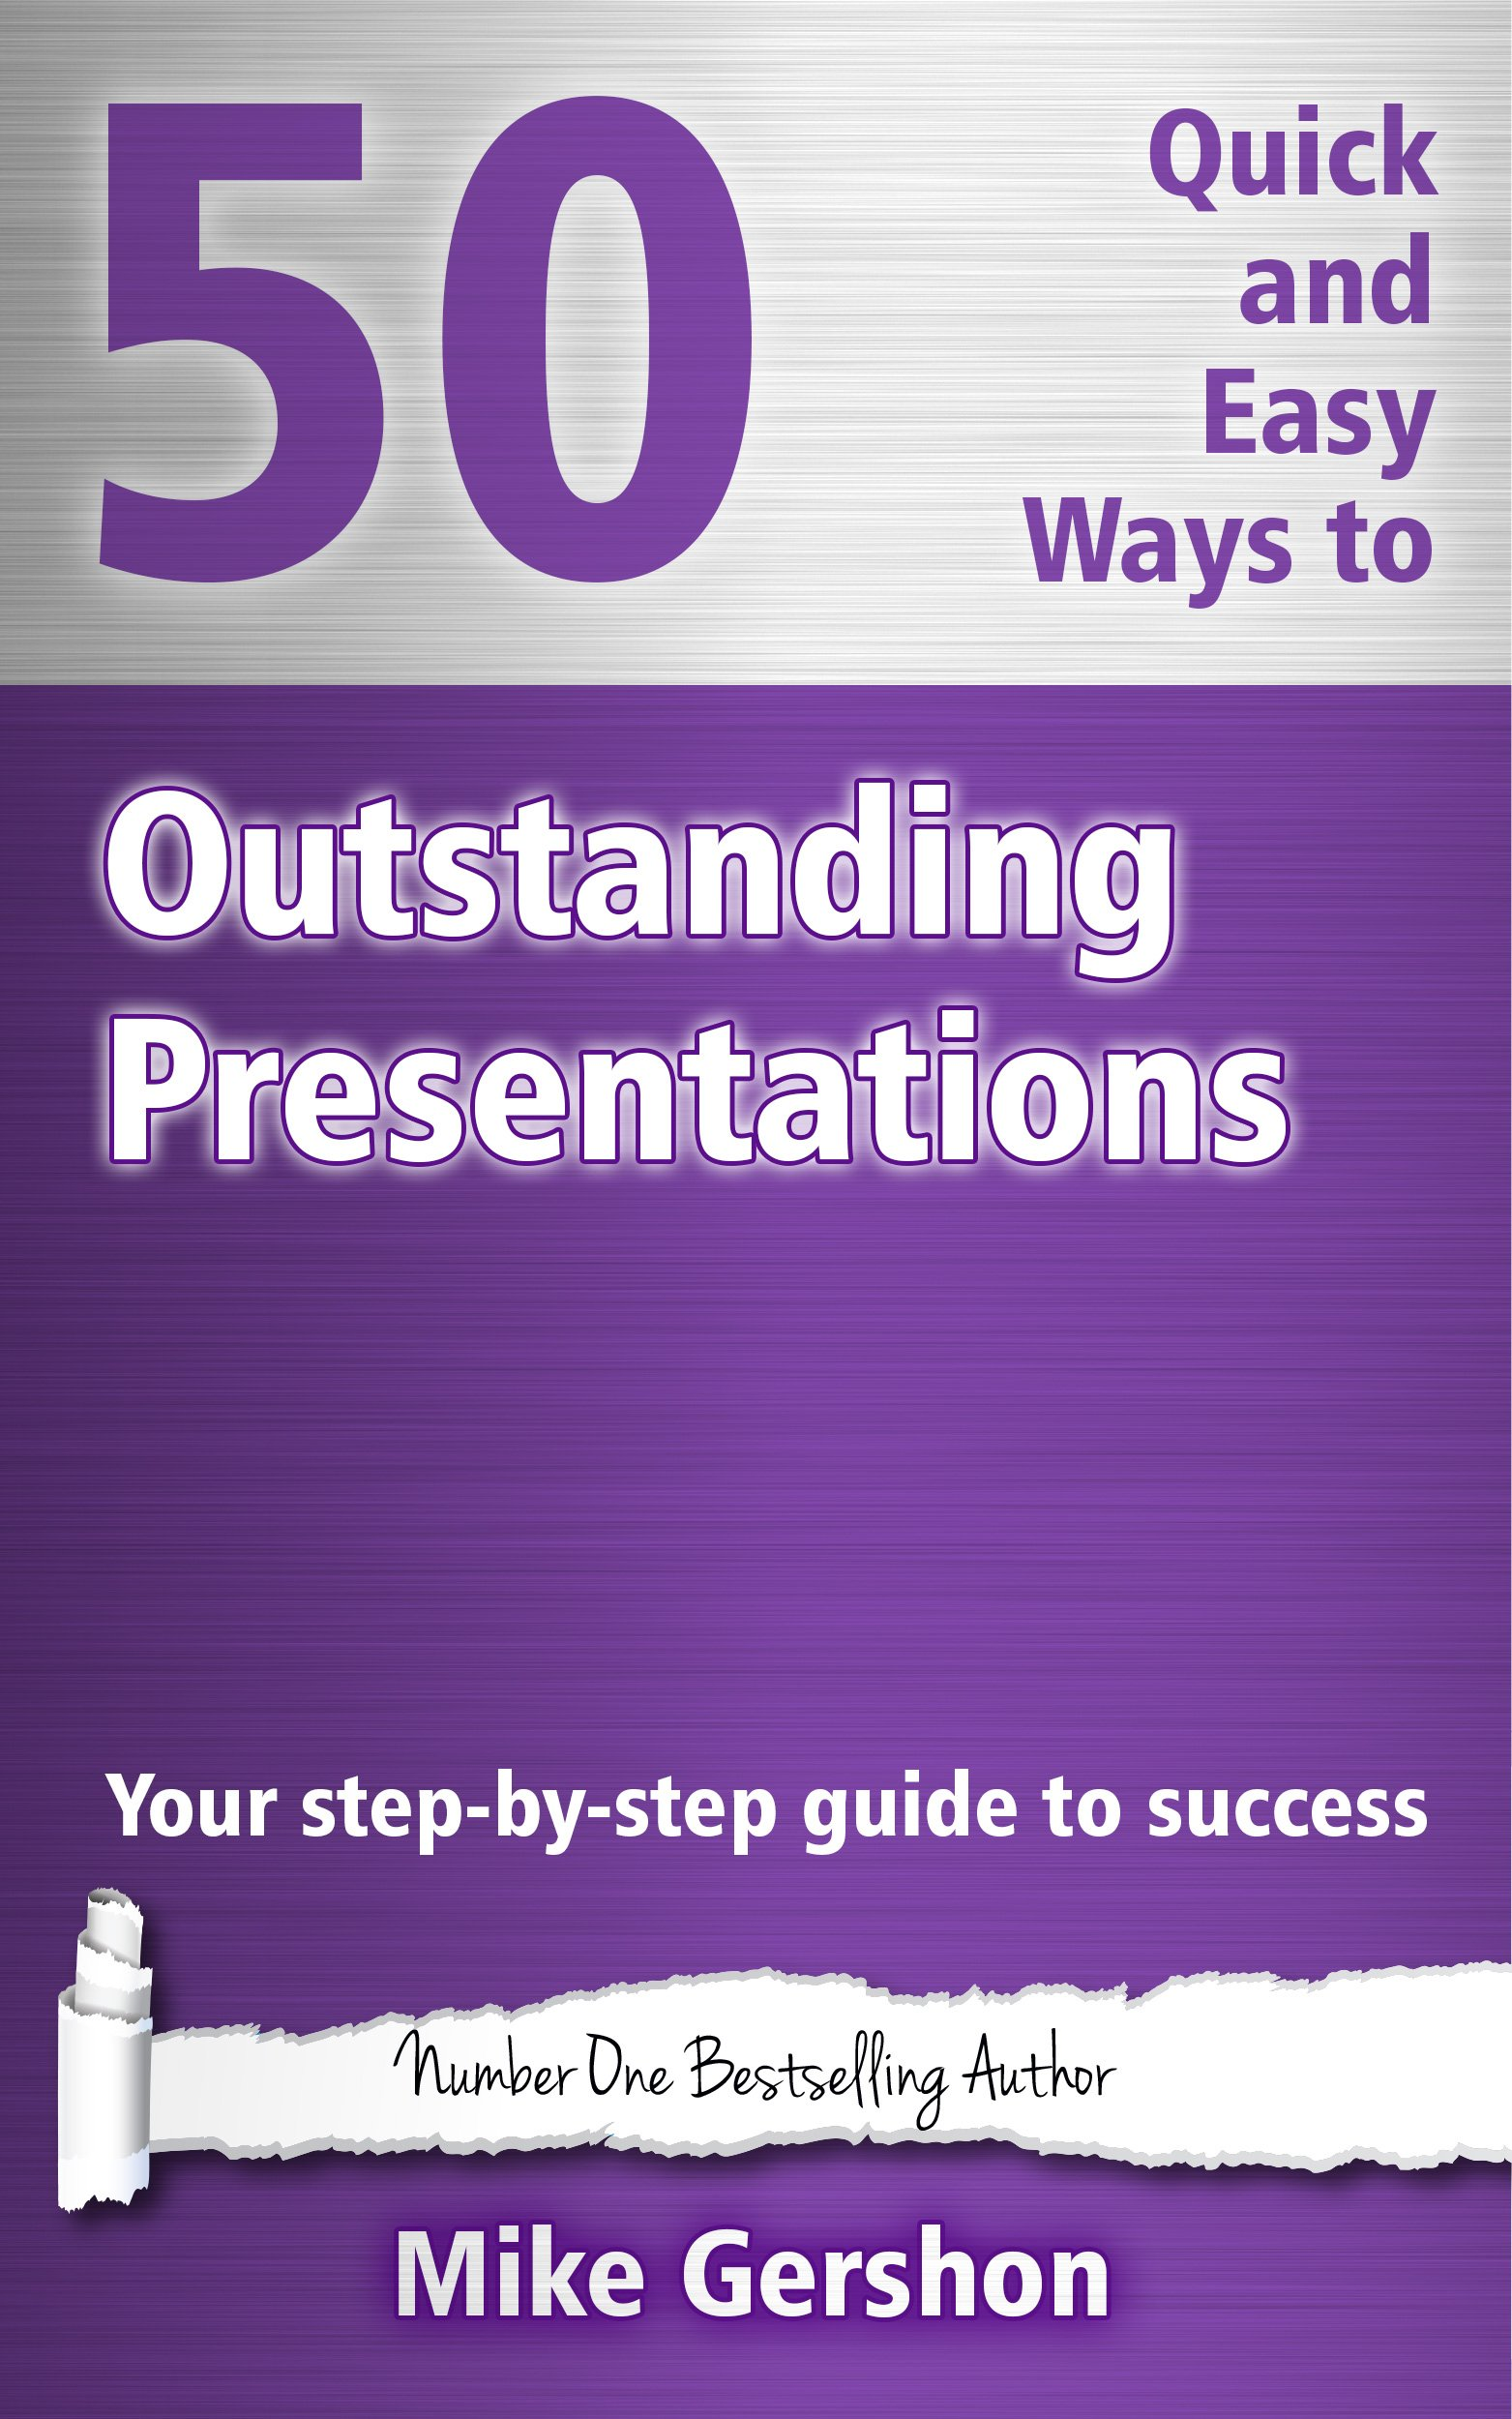 50 Quick and Easy Ways to Outstanding Presentations: Your Step-By-Step Guide to Success (Gershon Business Essentials Book 6)